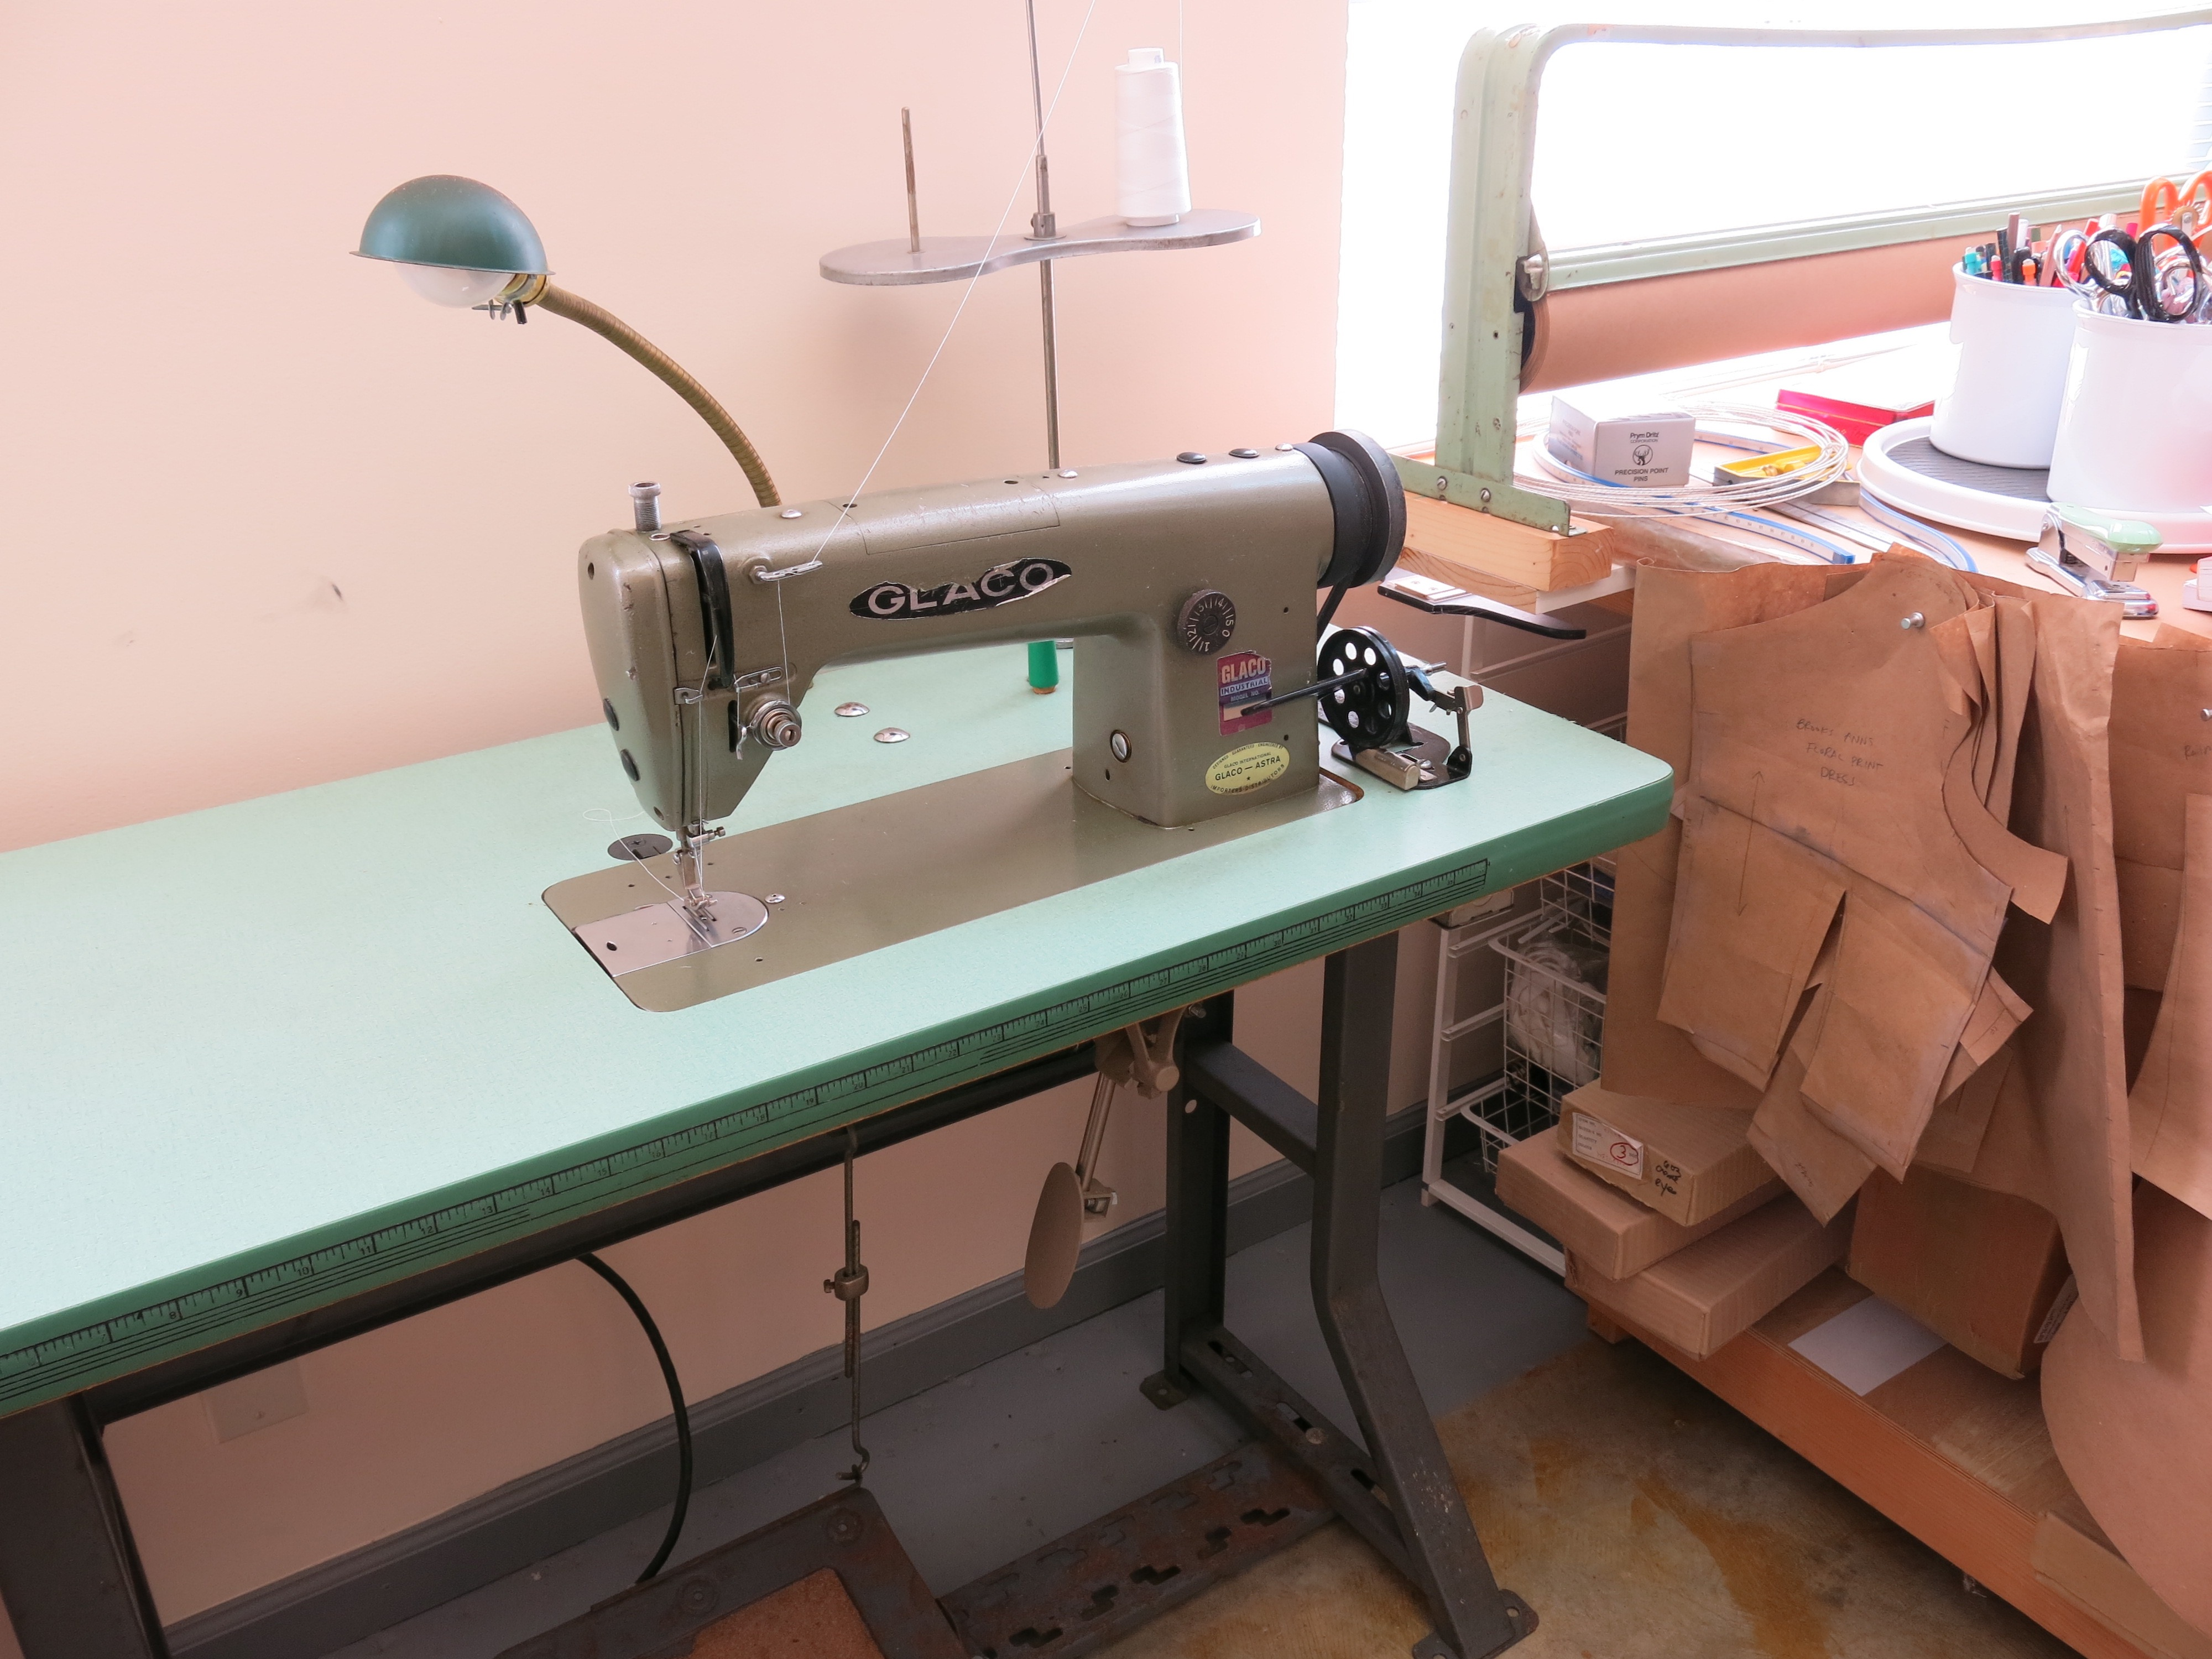 Brooks Ann Camper's industrial sewing machine